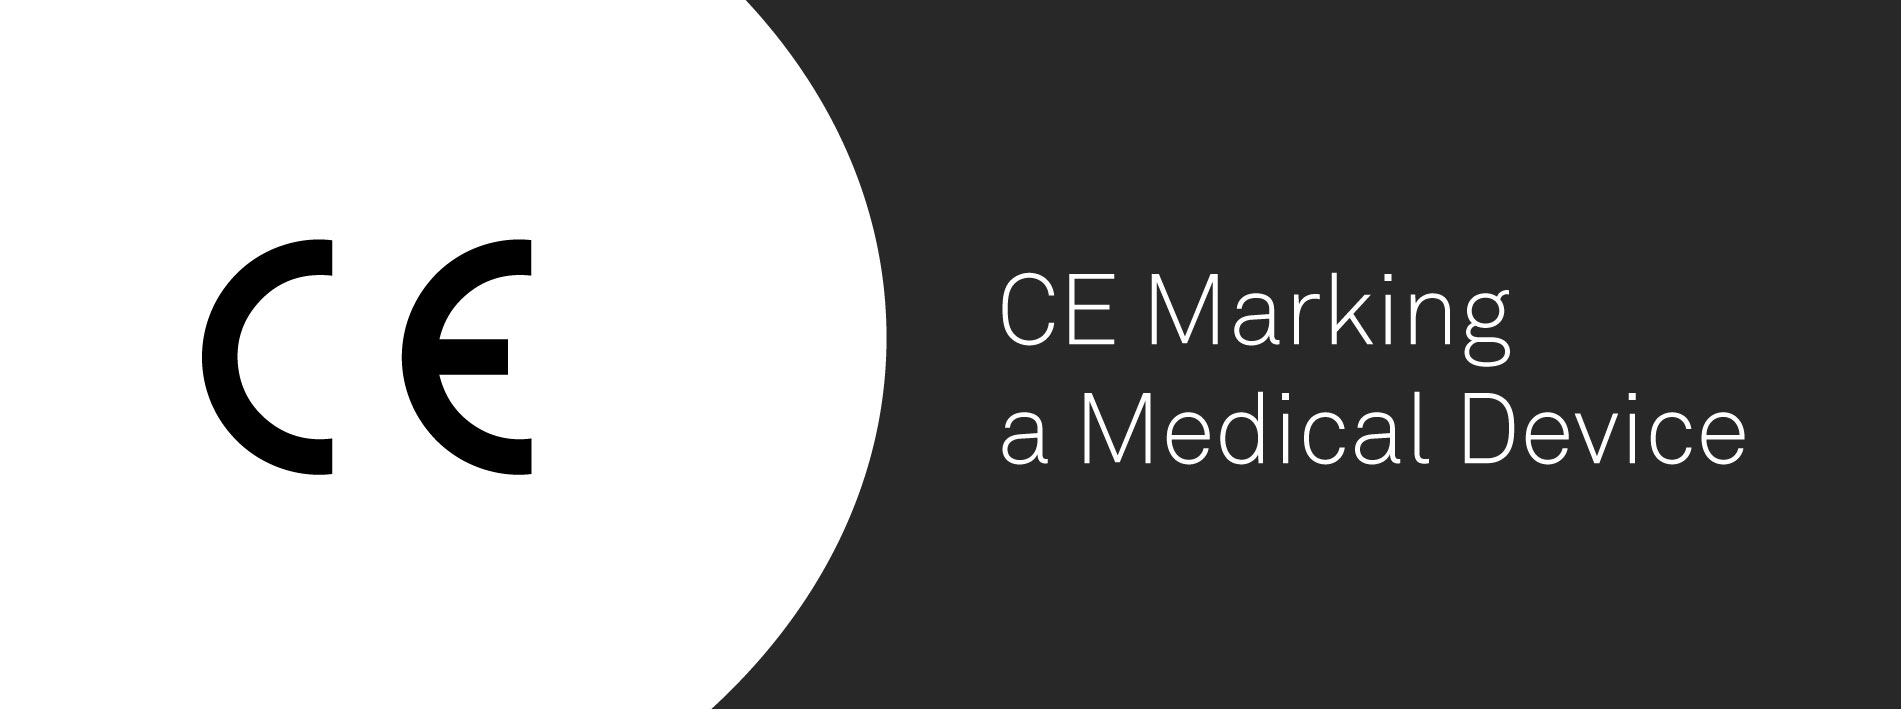 A banner representing CE marking for medical devices